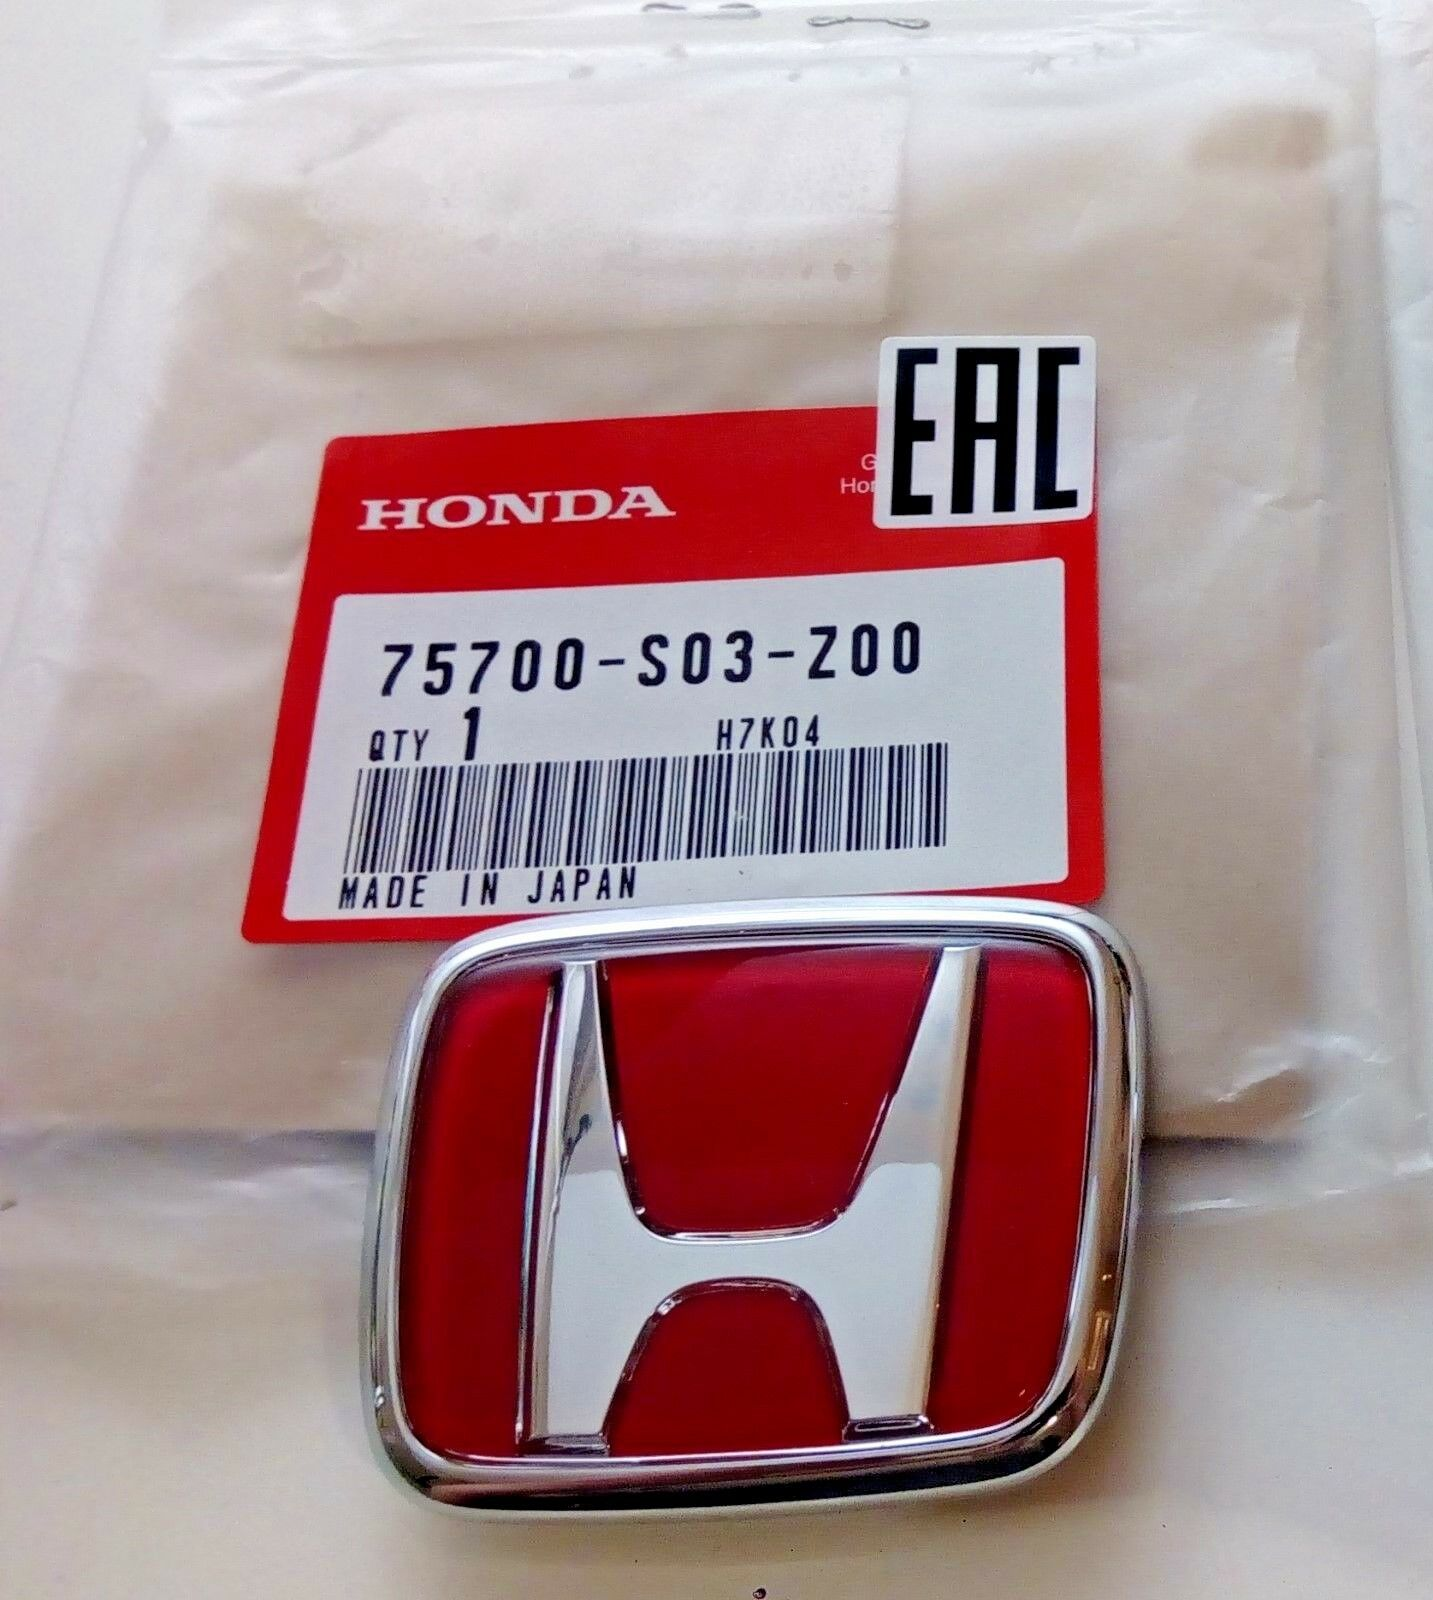 Front Emblem Honda Type-R Red Emblem Civic EK9 75700-S03-Z00 OEM Genuine